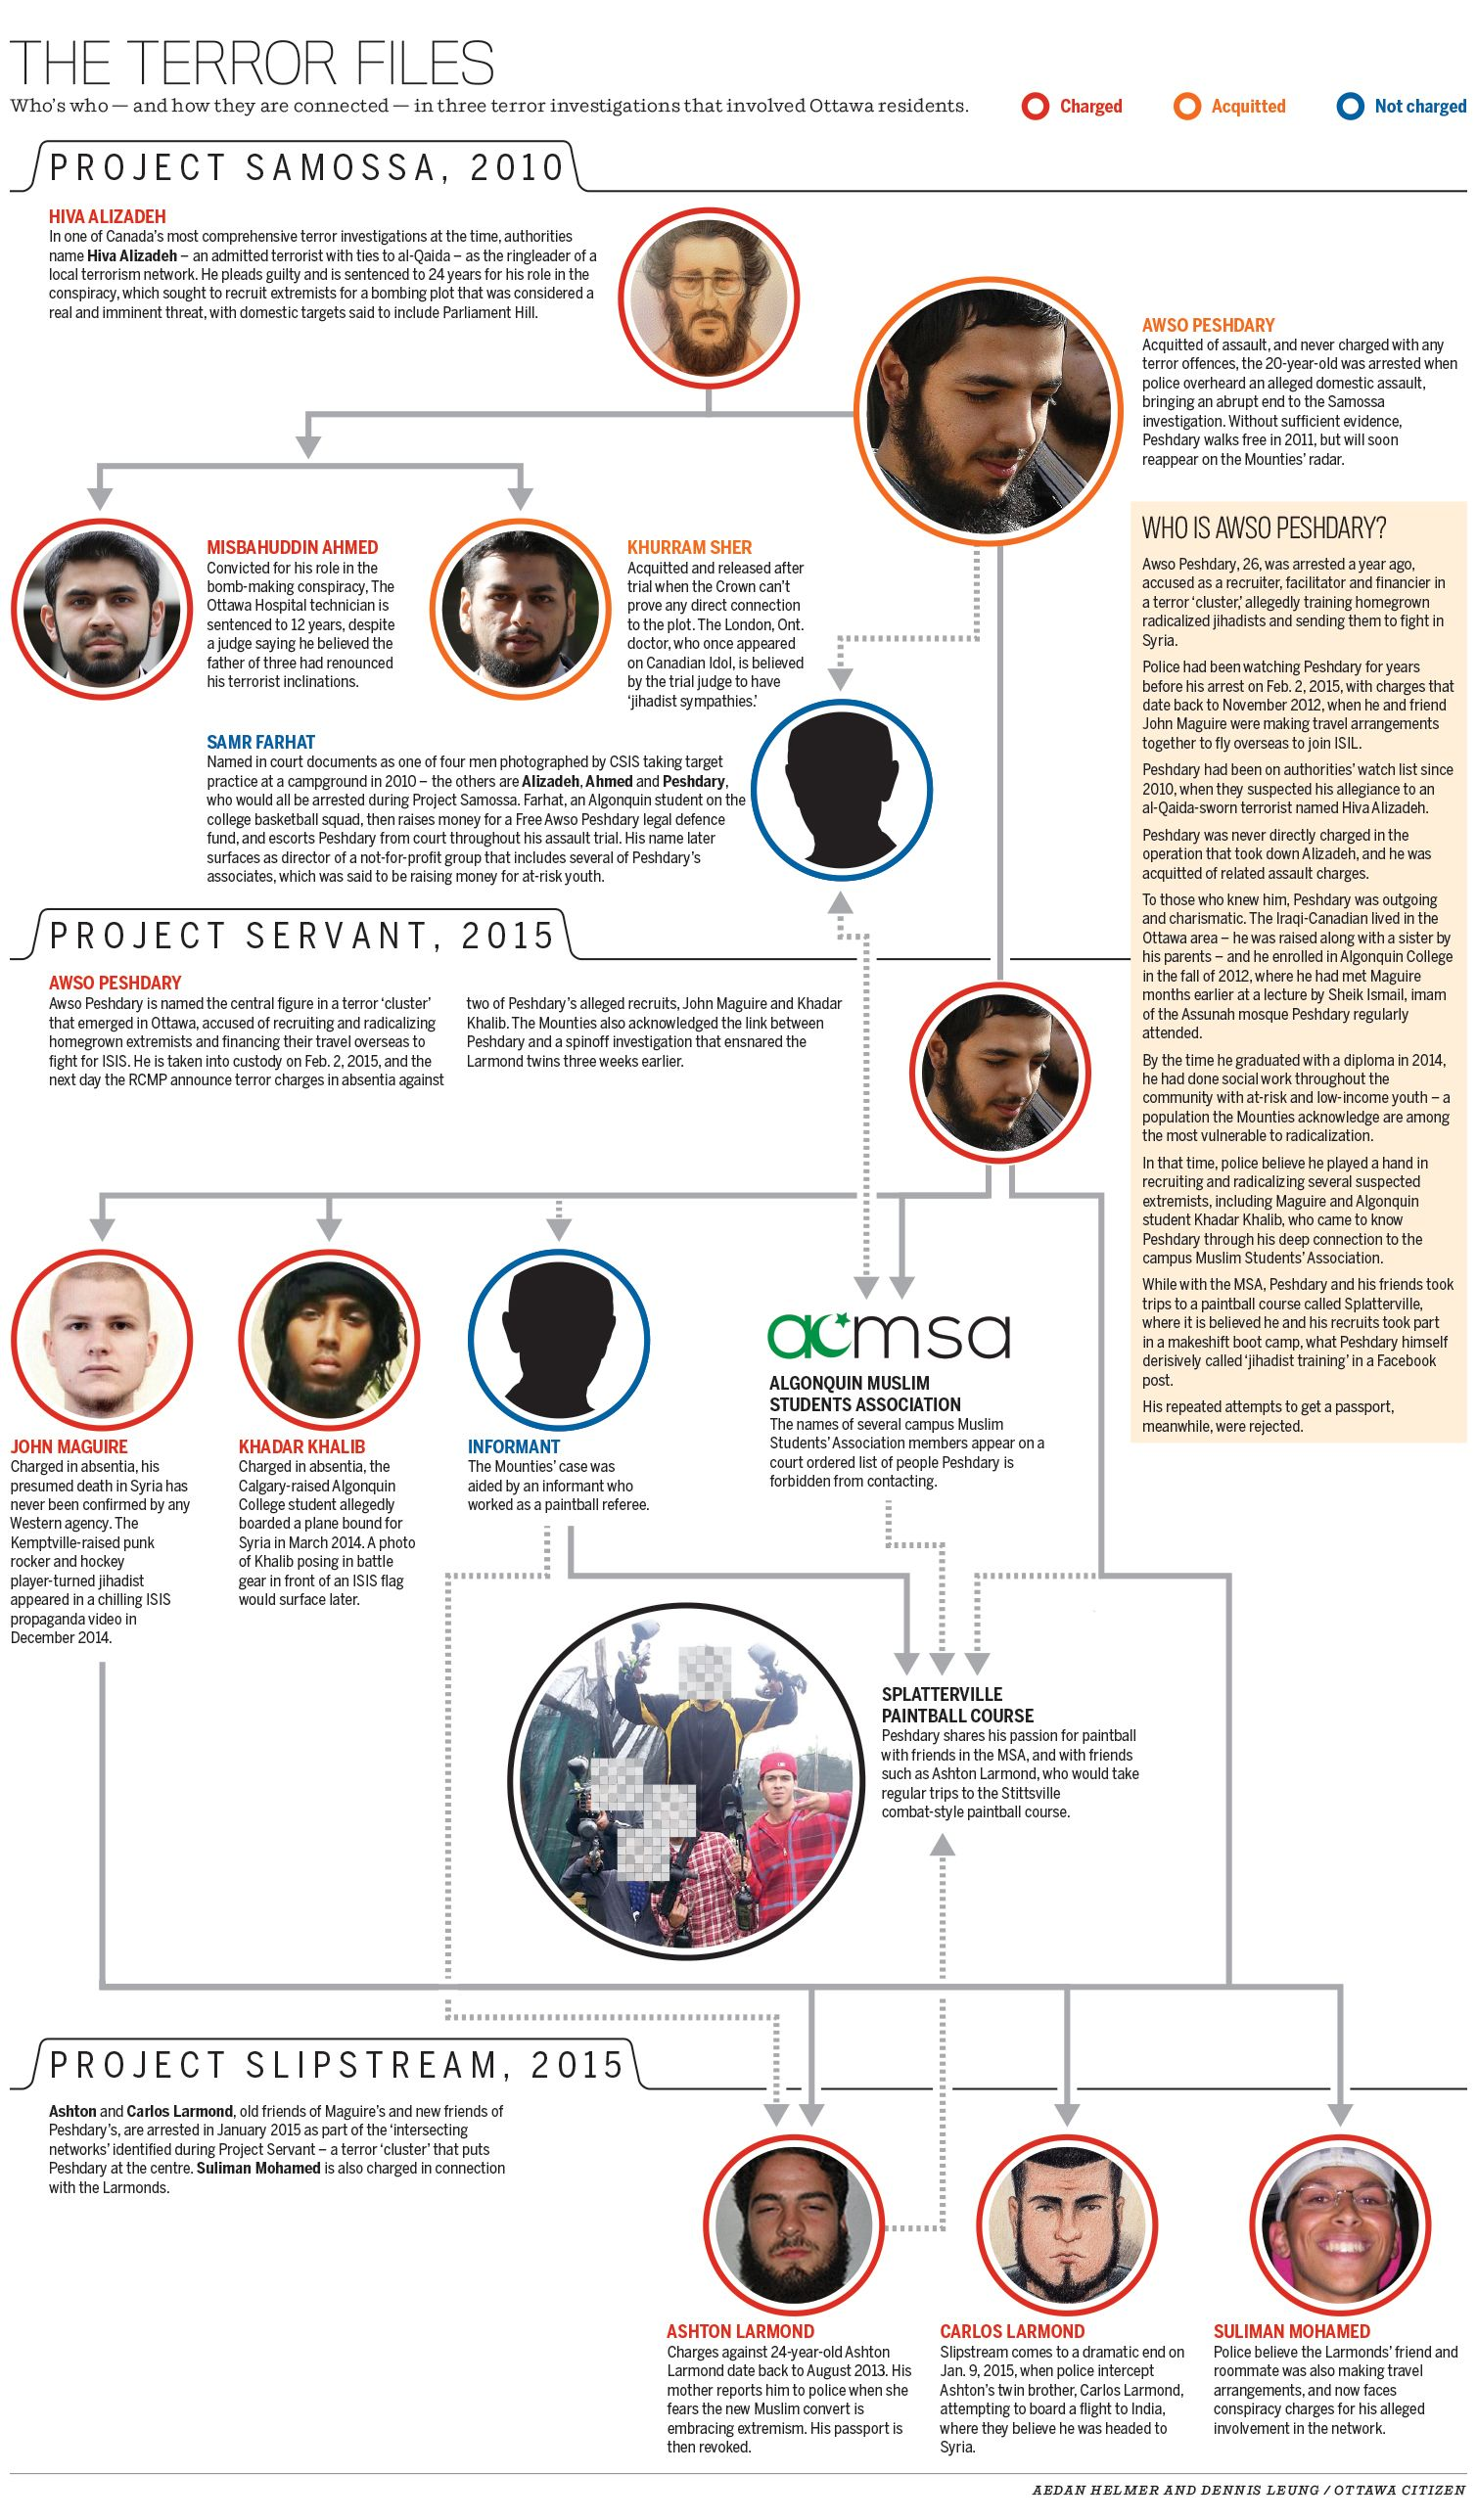 Who is Awso Peshdary: The case against an alleged Ottawa